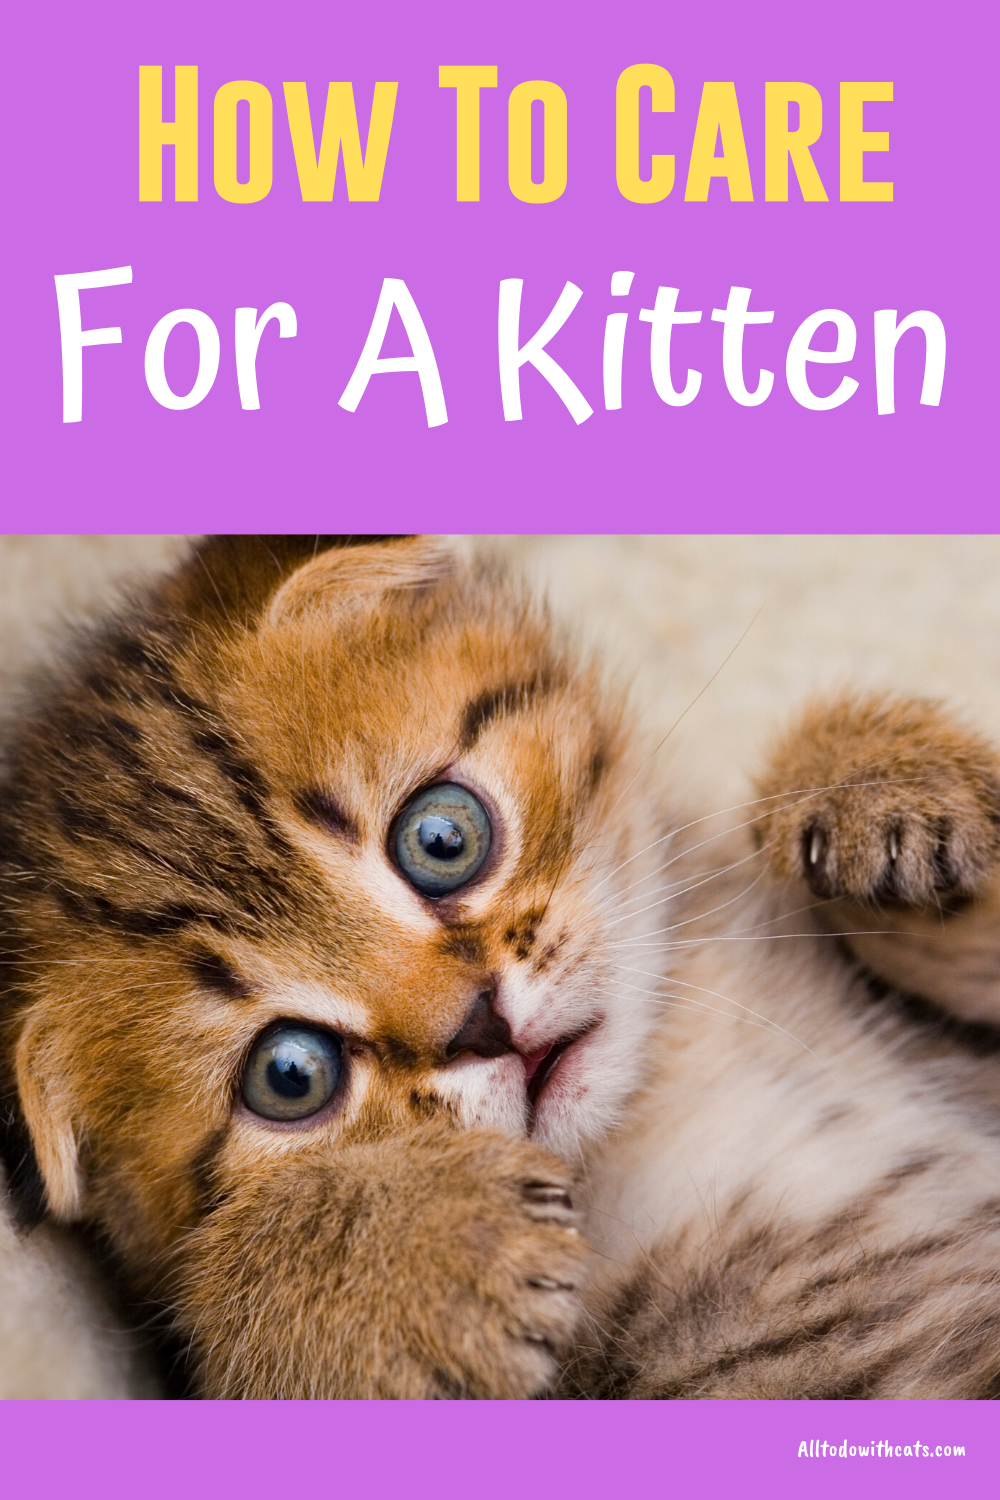 Kitten Chart Newborns To 8 Weeks Kitten Care Newborn Kitten Care Baby Kittens